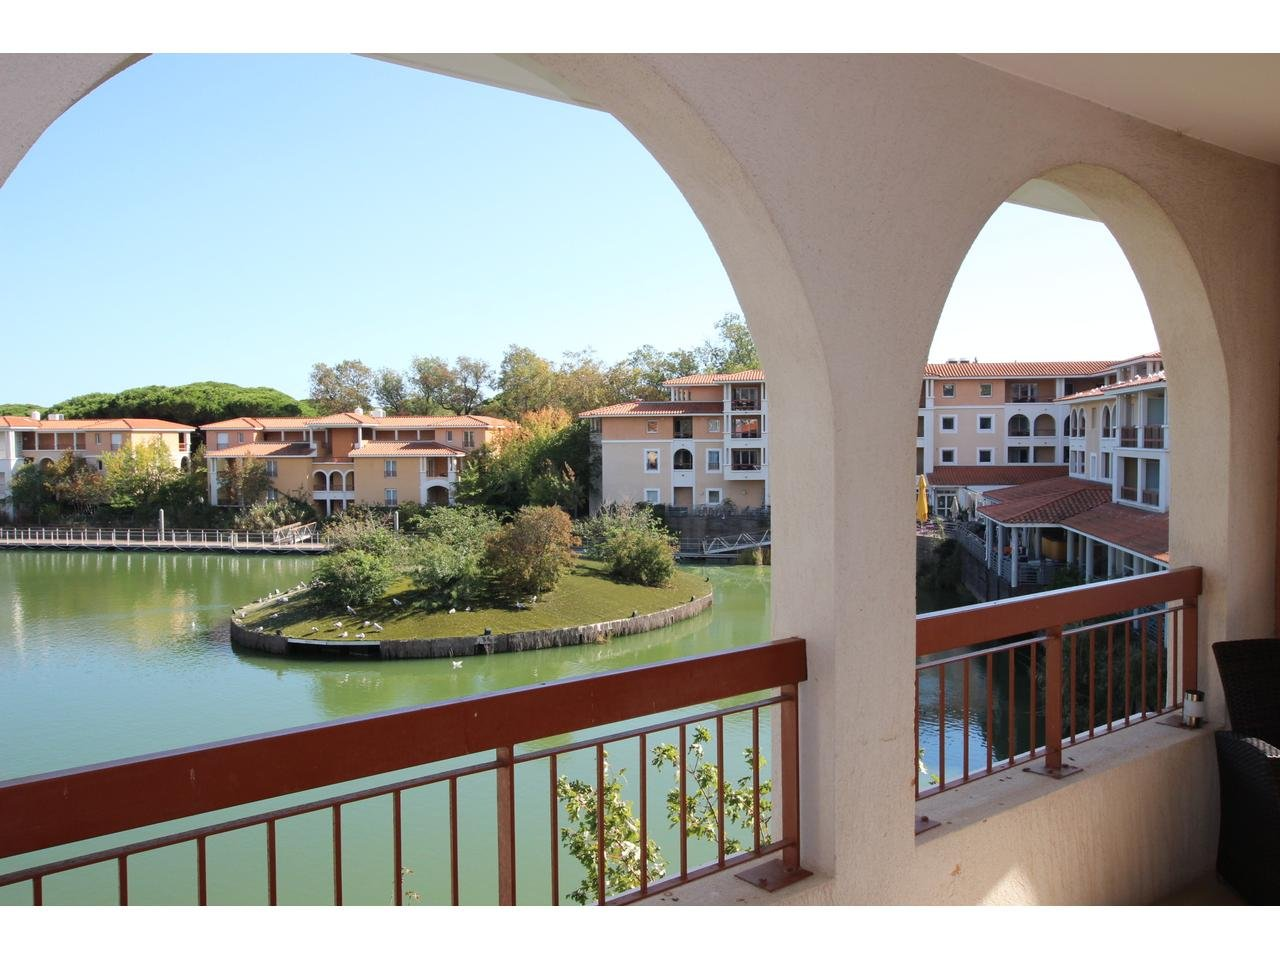 Lovely 2 room apartment in residence with pool, tennis courts, and park